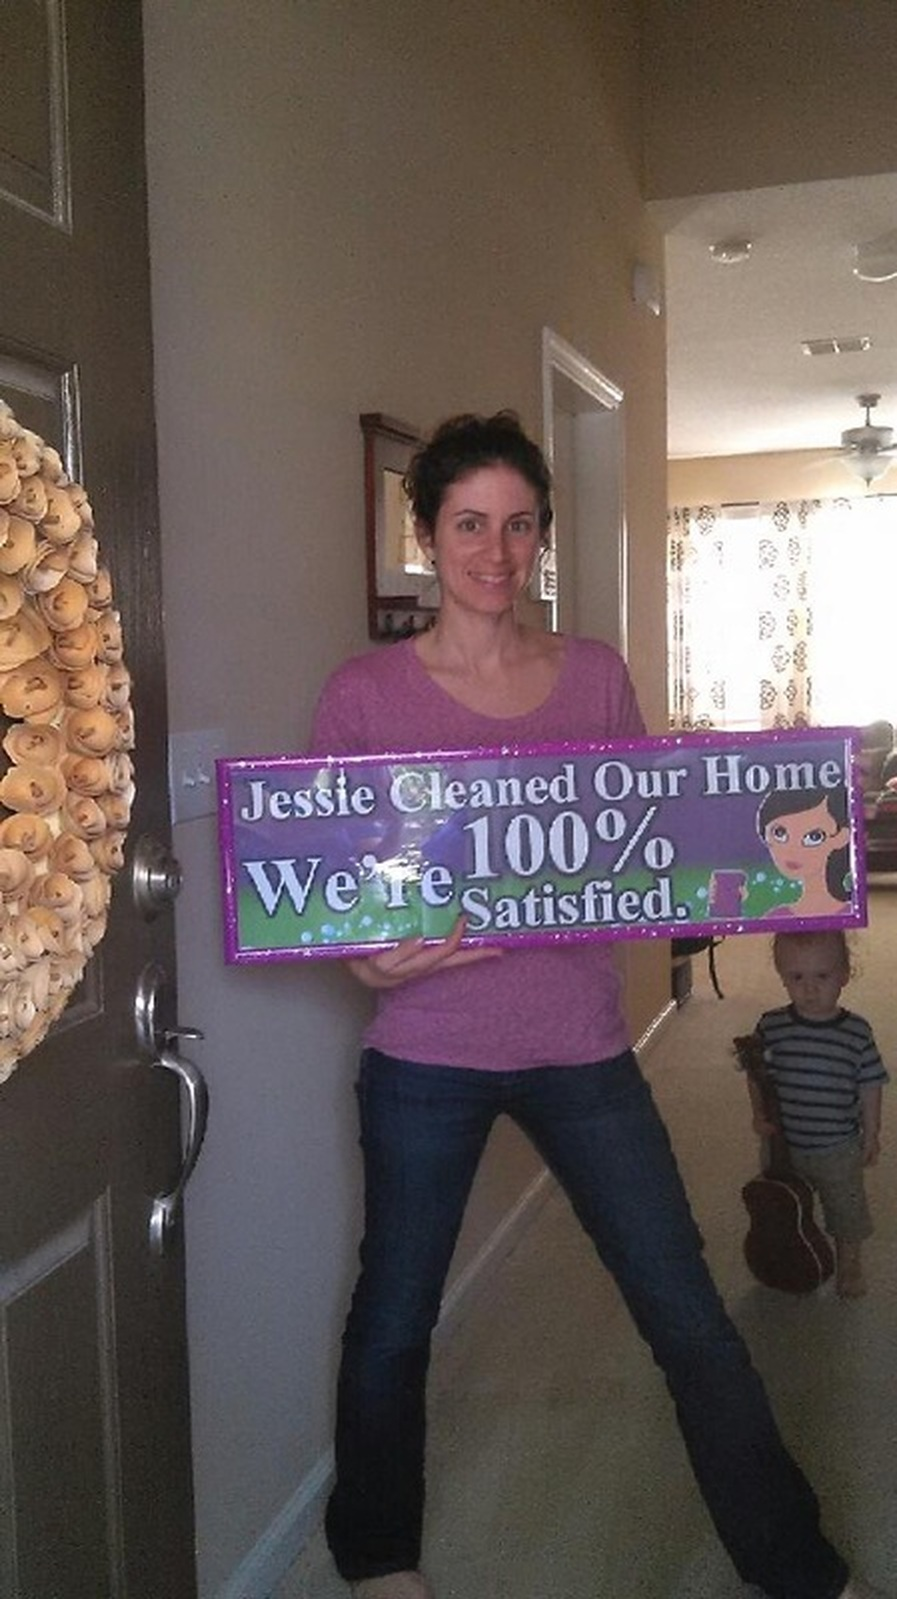 Carpet Cleaning Jacksonville, Carpet Cleaning Jacksonville Beach, Carpet Cleaning Ponte Vedra Beach, Carpet Cleaning Neptune Beach, Carpet Cleaning Atlantic Beach, Carpet Cleaning Orange Park, Carpet Cleaning Julington Creek, Carpet Cleaning Saint Augustine, Carpet Cleaning Saint Augustine Beach, Carpet Cleaning Palatka, Carpet Cleaning Saint Johns County, Carpet Cleaning Green Cove Springs, Carpet Cleaning Fernandina Beach, Carpet Cleaning Fleming Island, Carpet Cleaning Mandarin, Carpet Cleaning San Marco.  Carpet Cleaning Service Jacksonville, Carpet Cleaning Service Jacksonville Beach, Carpet Cleaning Service Ponte Vedra Beach, Carpet Cleaning Service Neptune Beach, Carpet Cleaning Service Atlantic Beach, Carpet Cleaning Service Orange Park, Carpet Cleaning Service Julington Creek, Carpet Cleaning Service Saint Augustine, Carpet Cleaning Service Saint Augustine Beach, Carpet Cleaning Service Palatka, Carpet Cleaning Service Saint Johns County, Carpet Cleaning Service Green Cove Springs, Carpet Cleaning Service Fernandina Beach, Carpet Cleaning Service Fleming Island, Carpet Cleaning Service Mandarin, Carpet Cleaning Service San Marco.